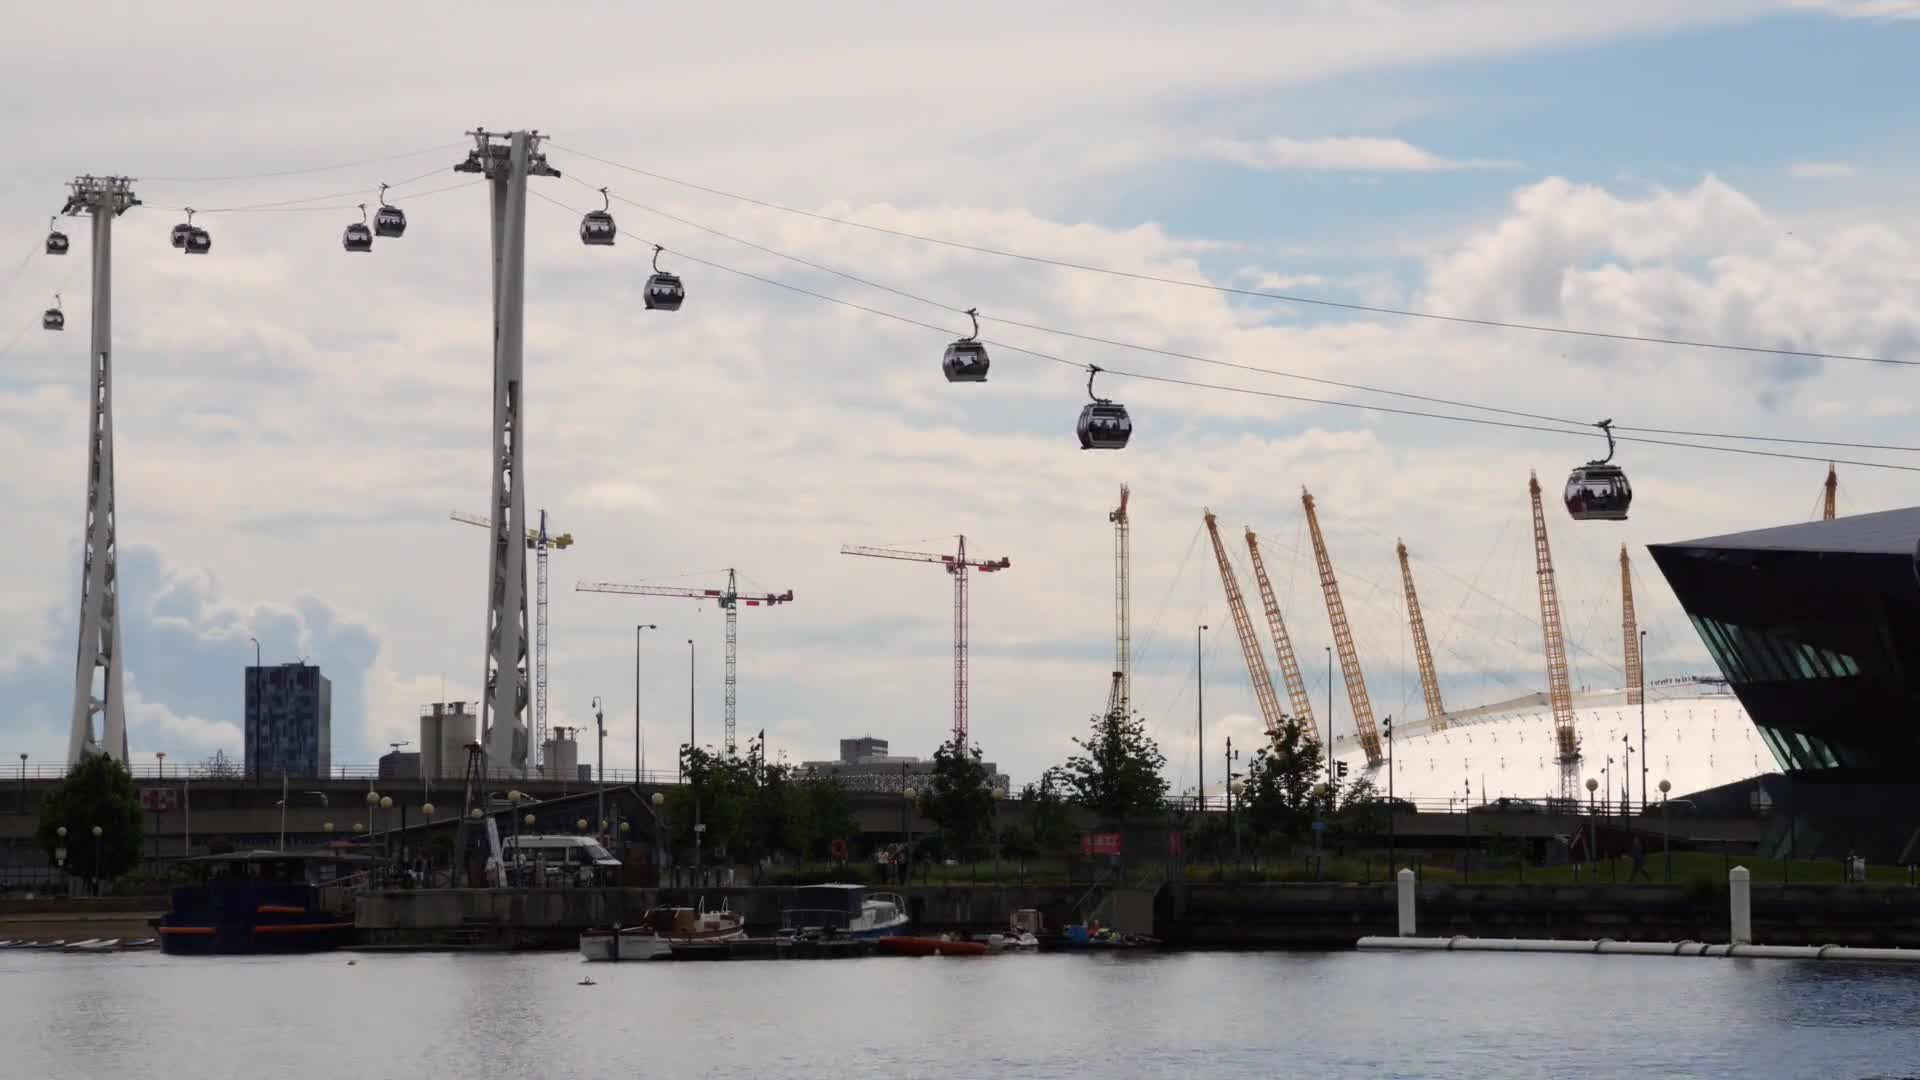 Time lapse video of cable cars